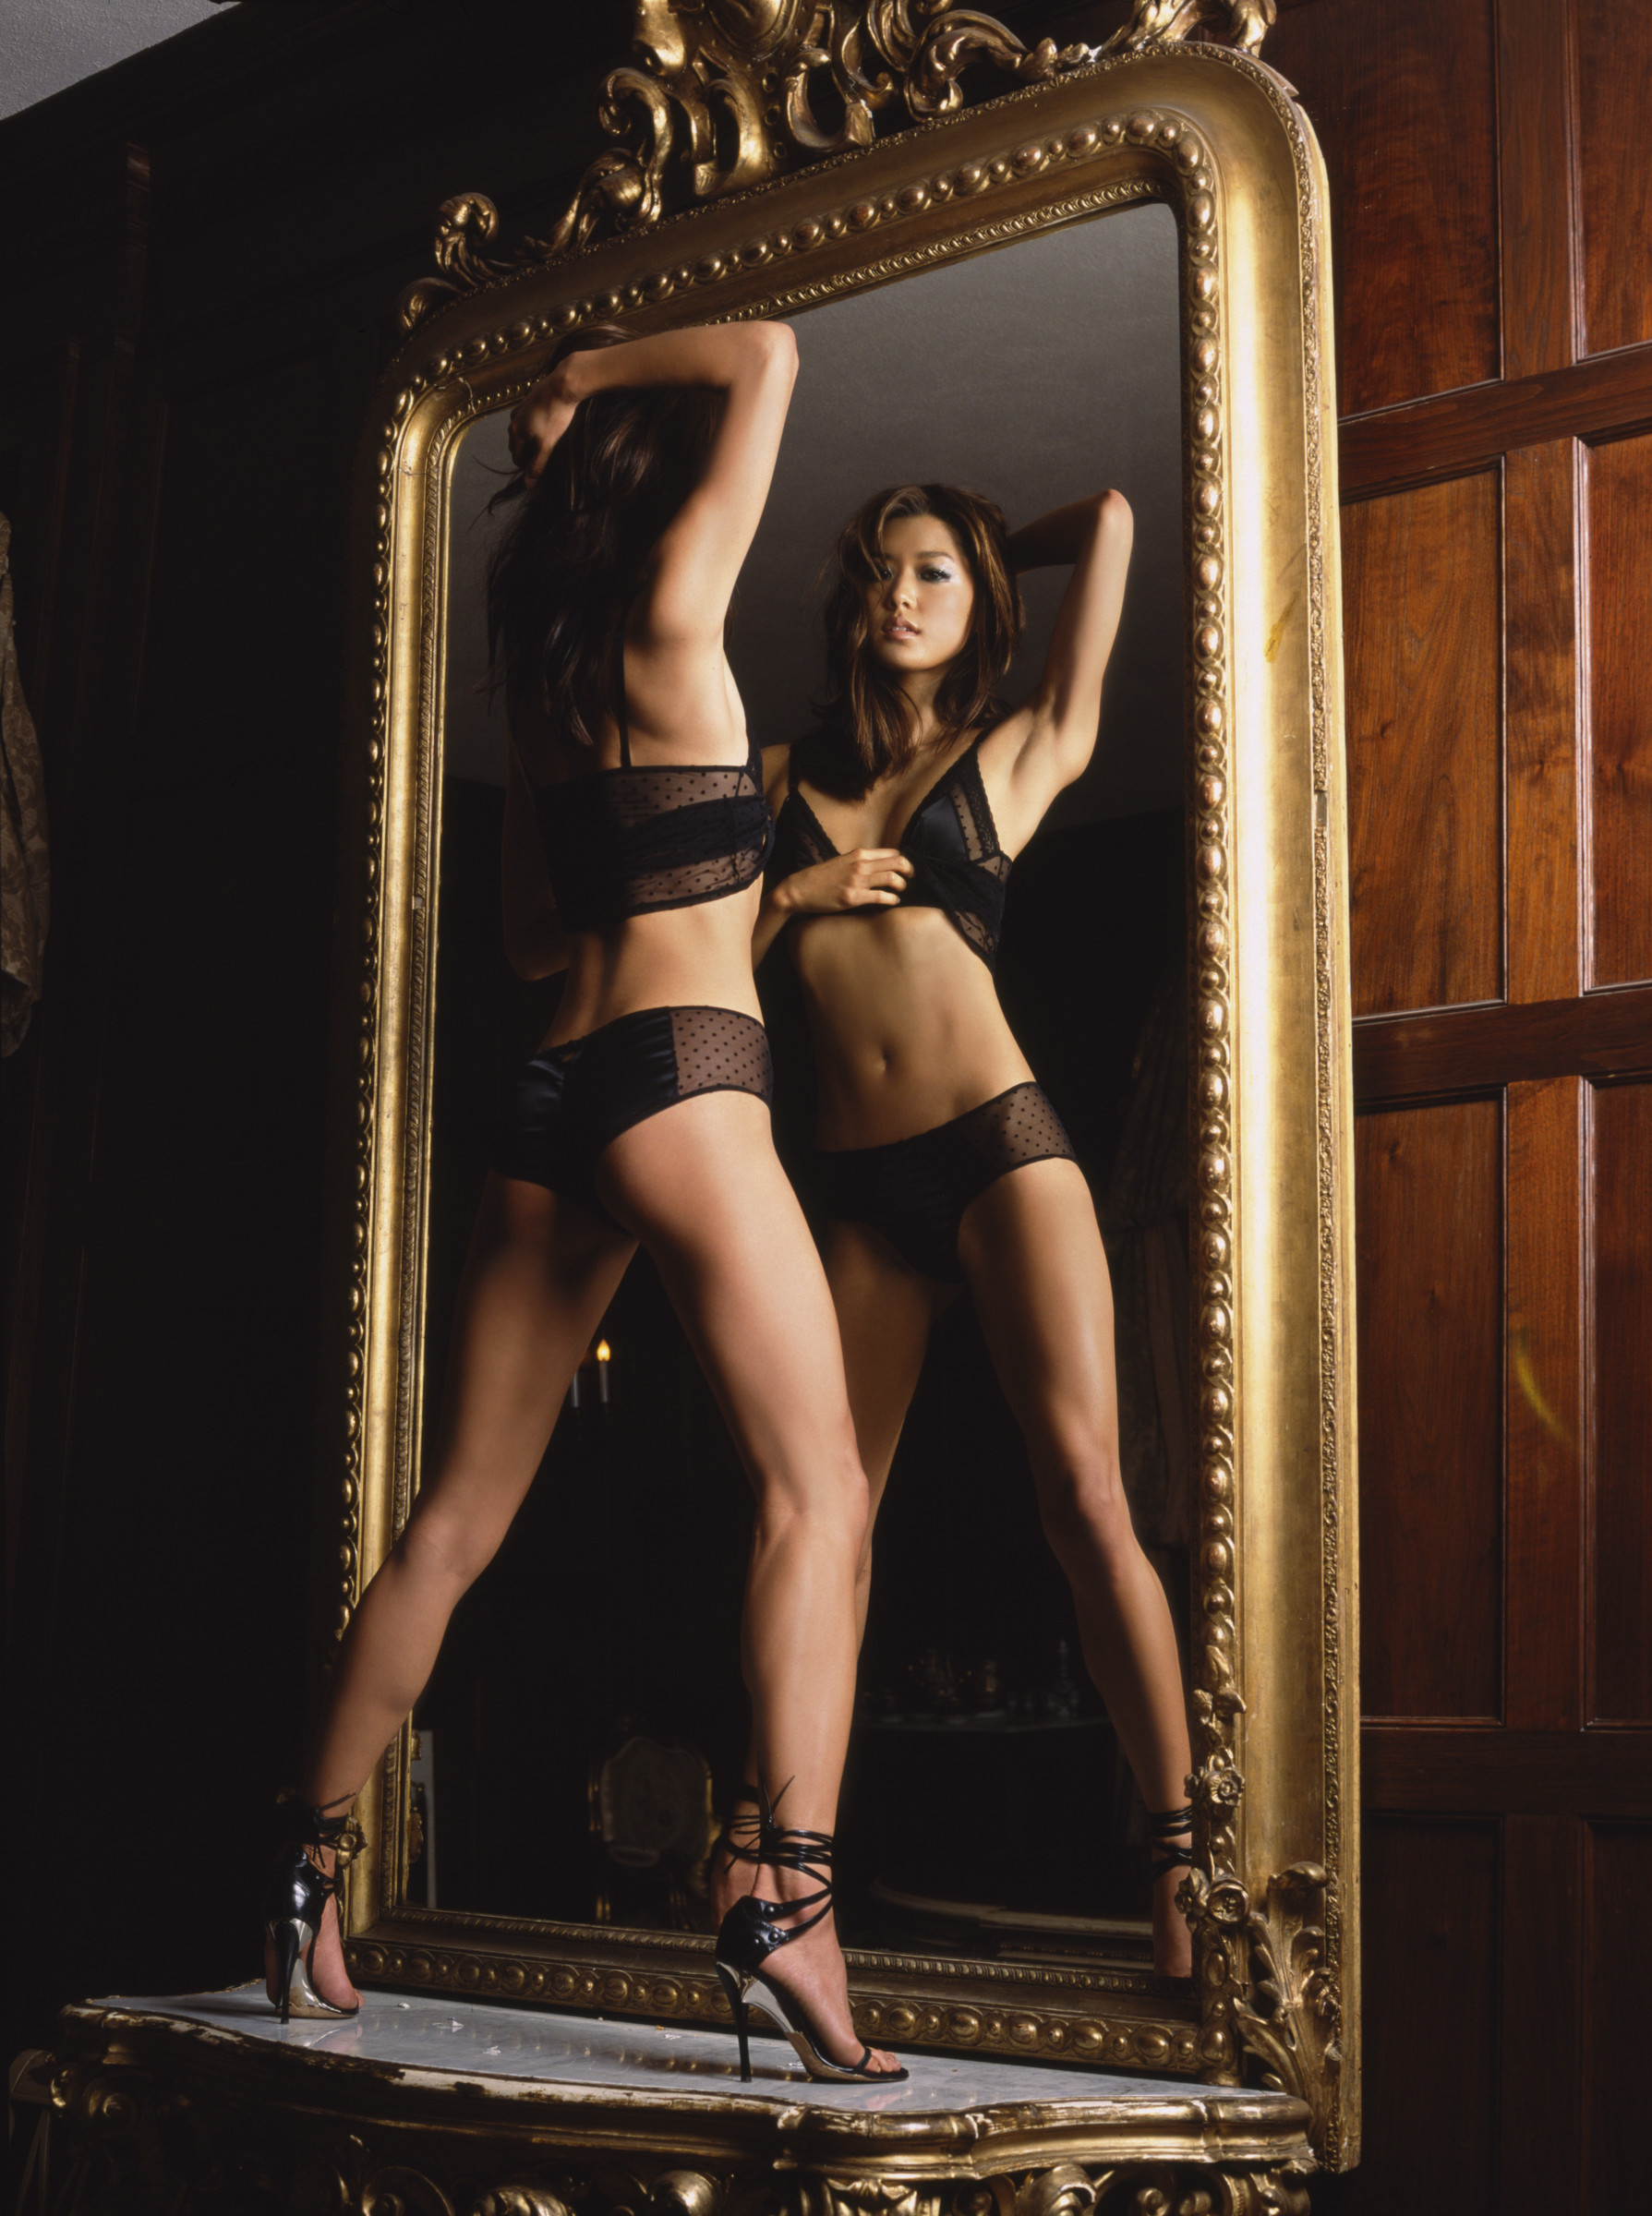 girls-in-the-mirror-44